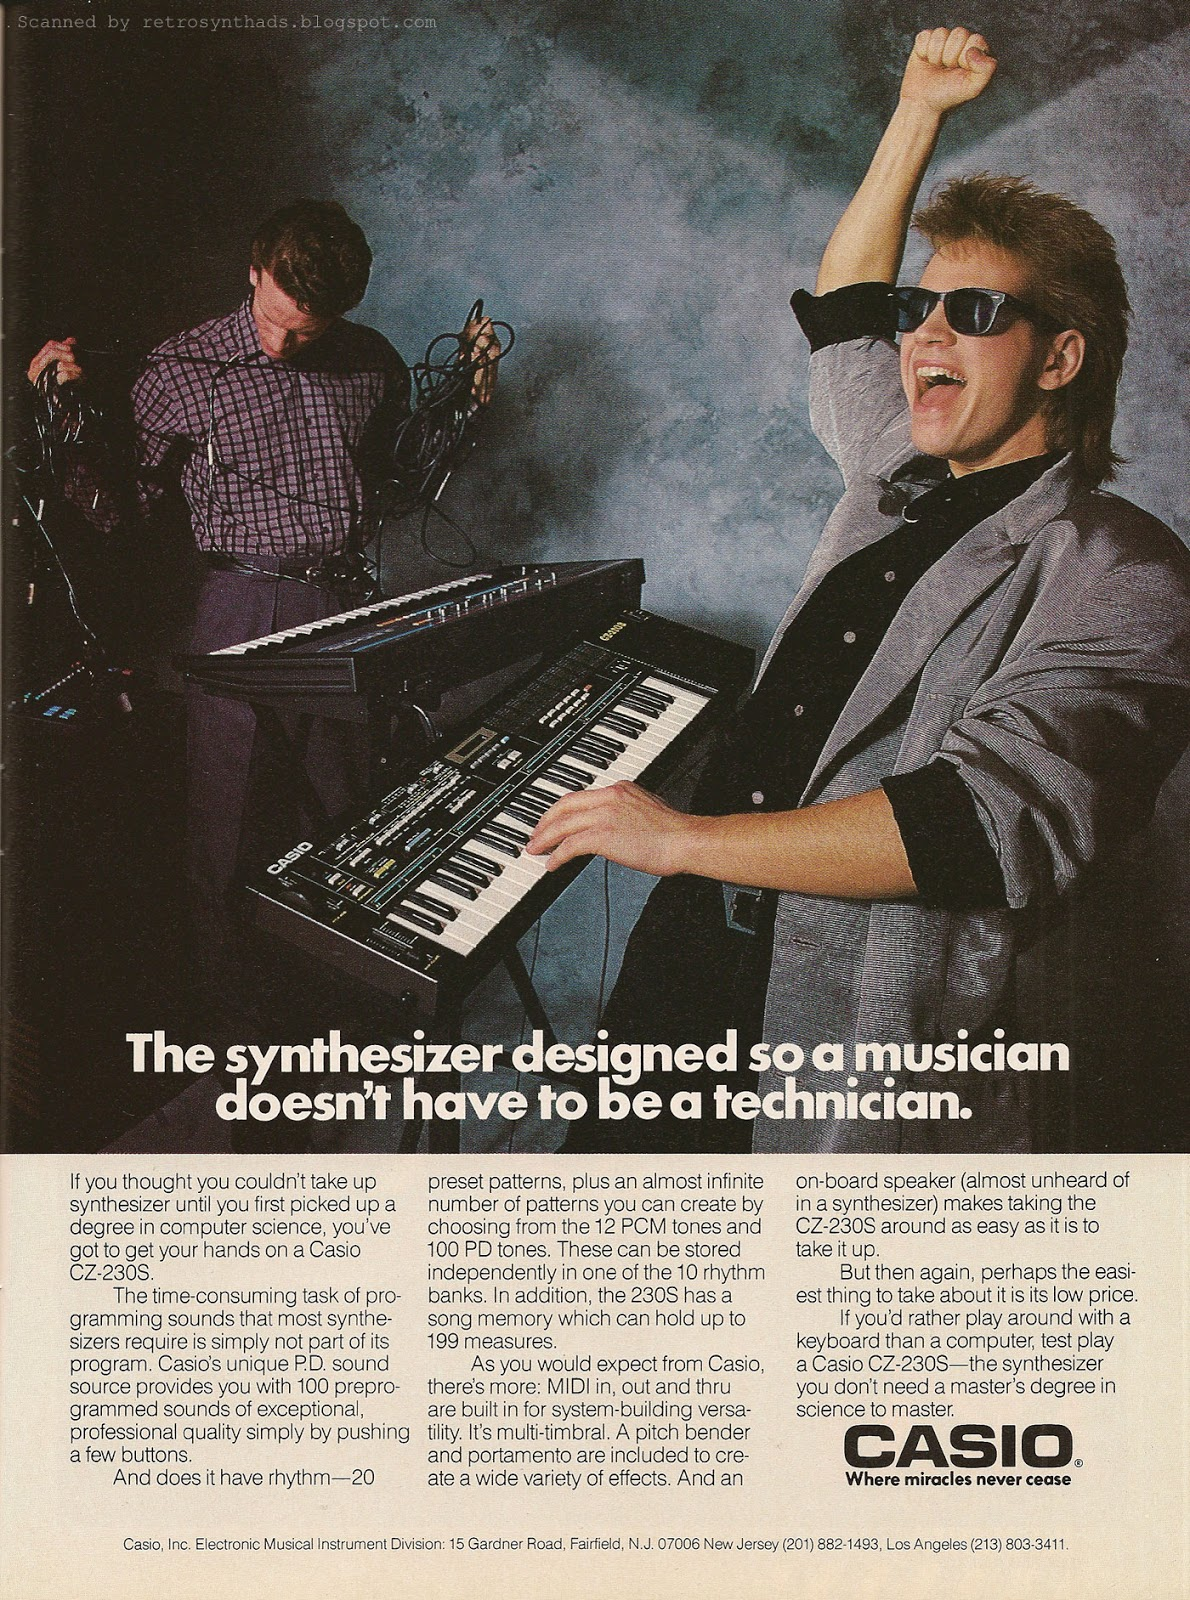 The Best Retro 1980s Ads - Vintage Ads - Thrillist